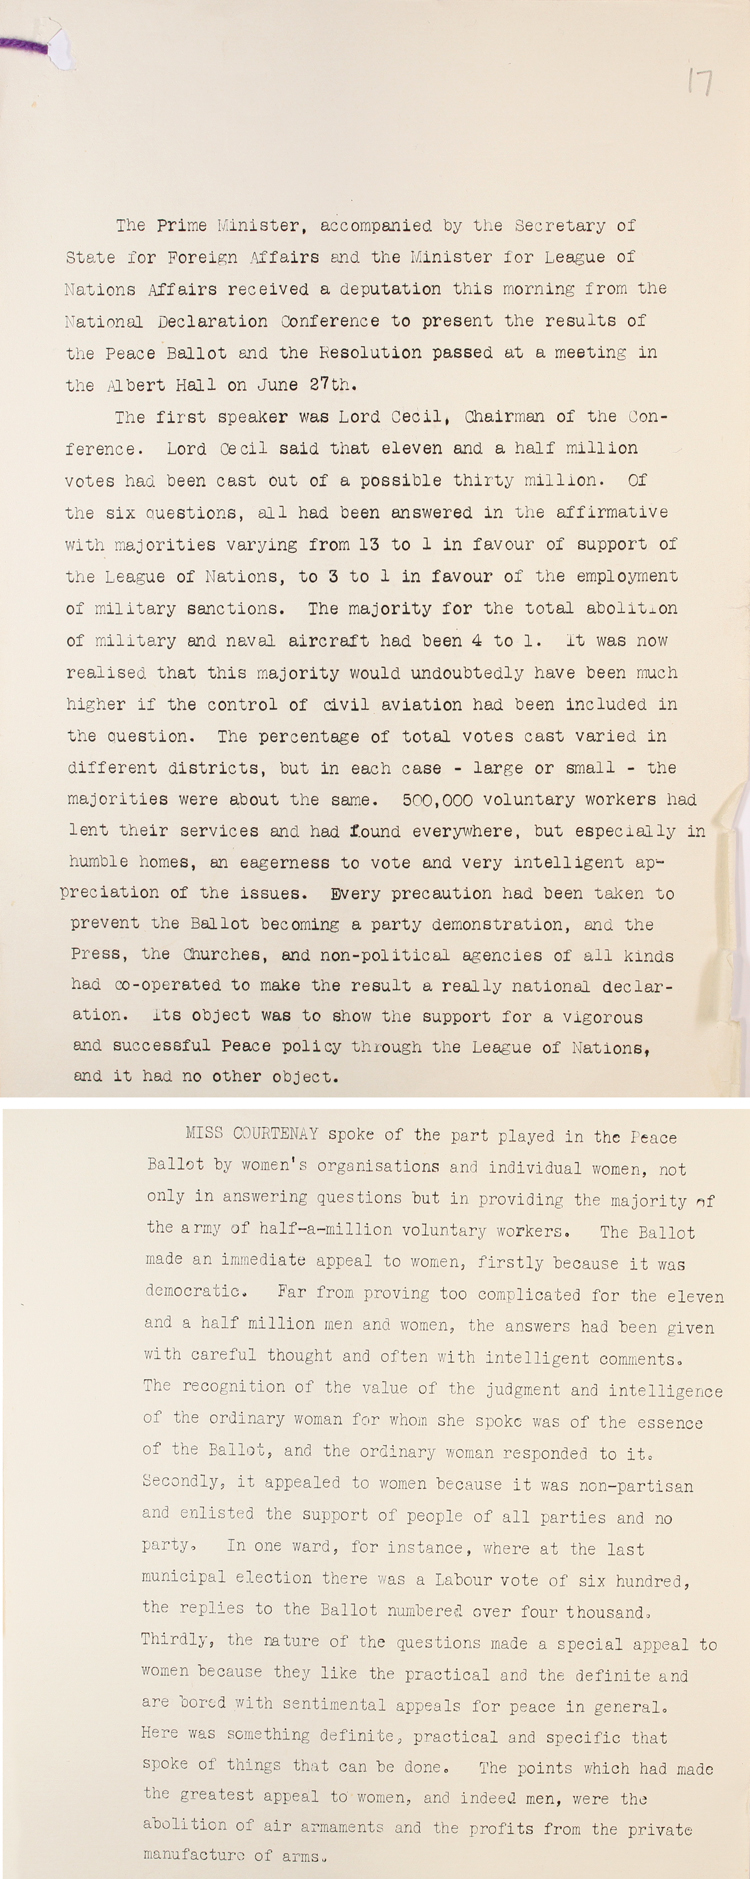 Extracts from an account of a deputation to the Prime Minister Stanley Baldwin to formally report the results of the Peace Ballot organised by the League of Nations Union, 23rd July, 1935 (PREM 1/178)